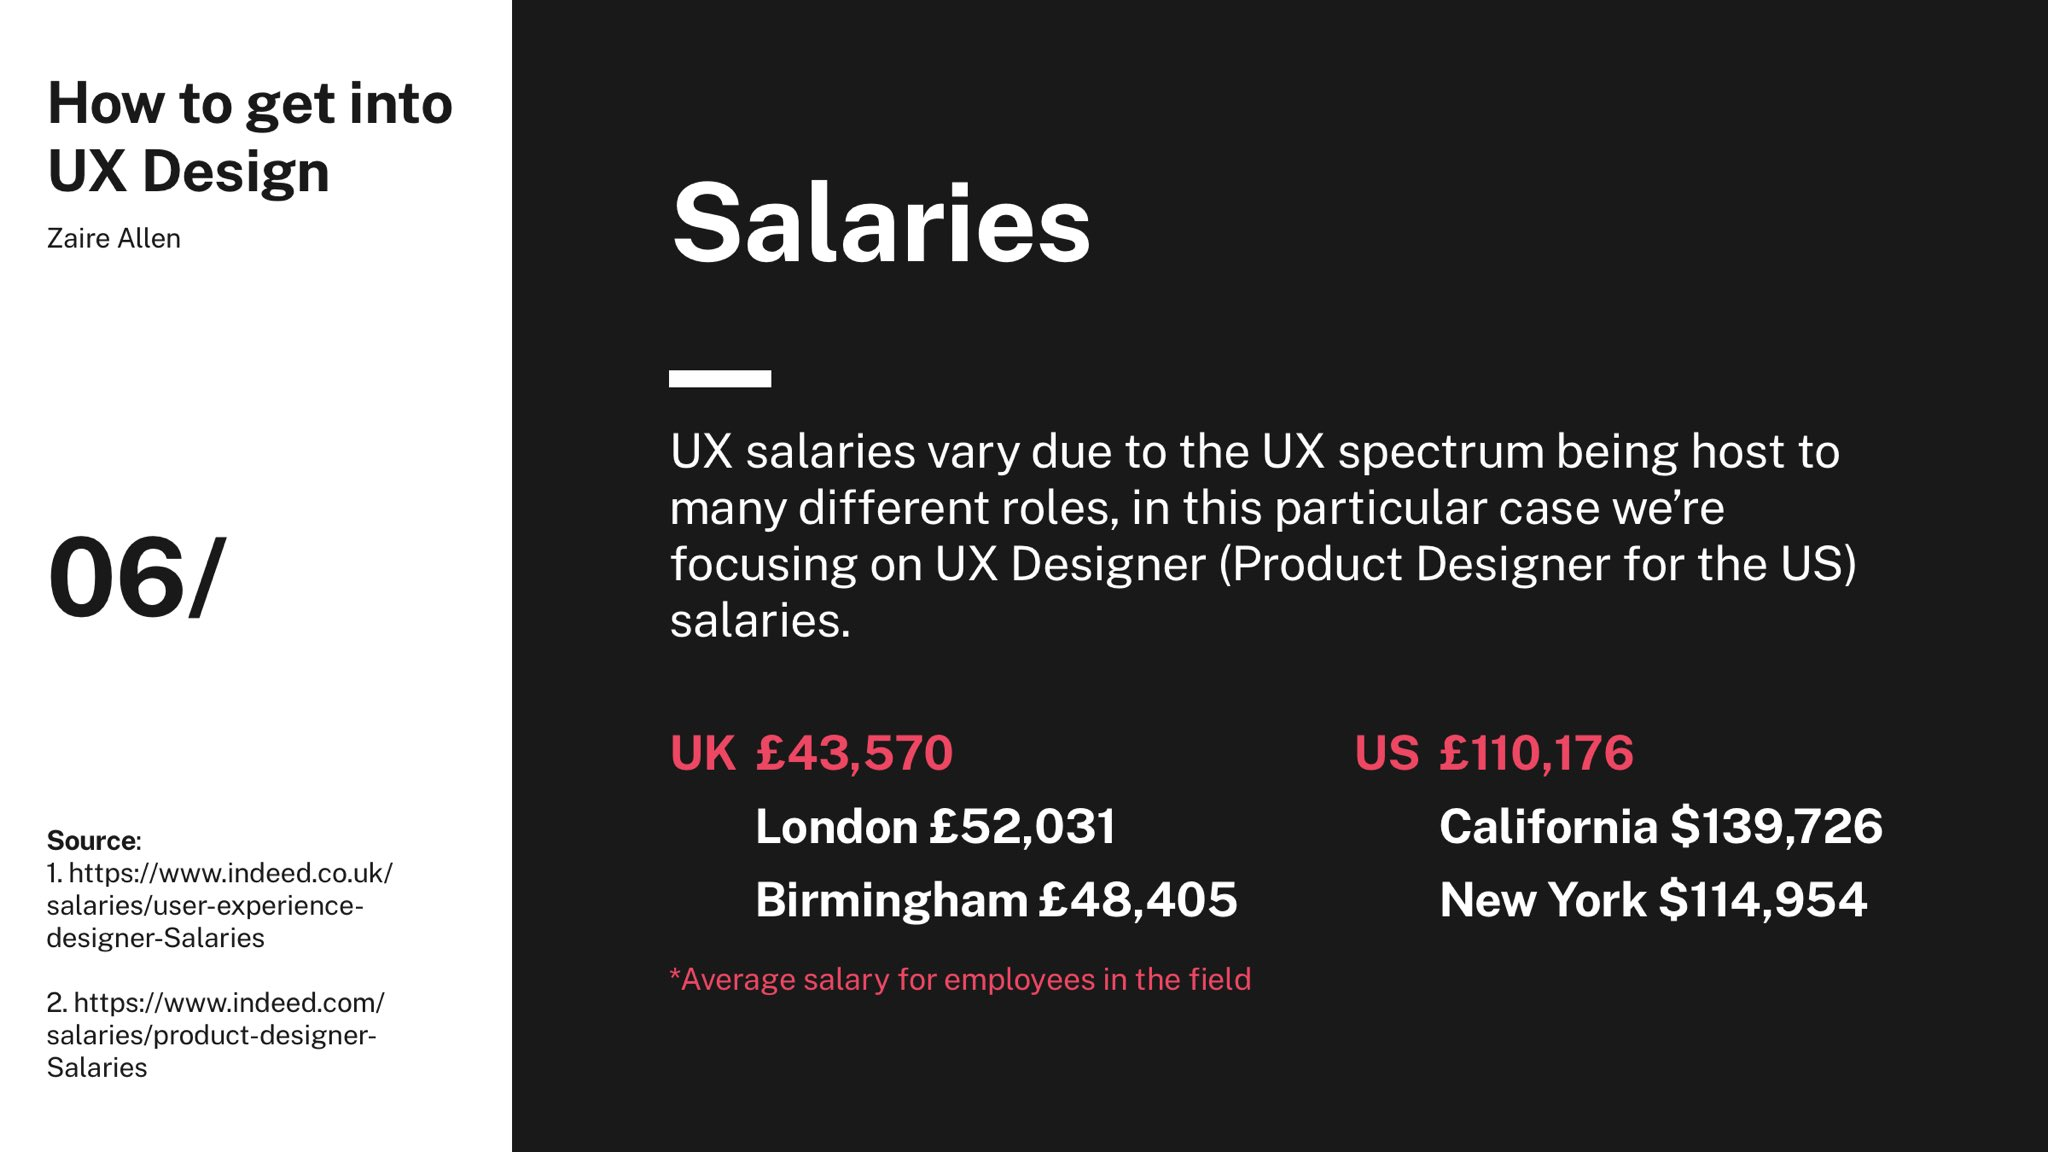 Zaire On Twitter 06 Average Salaries For A Ux Designer Uk And Product Designer Us These Salaries Are Based On Full Time Employment And Not Contracting Or Freelance Which May Differ Https T Co Wylqskolqz